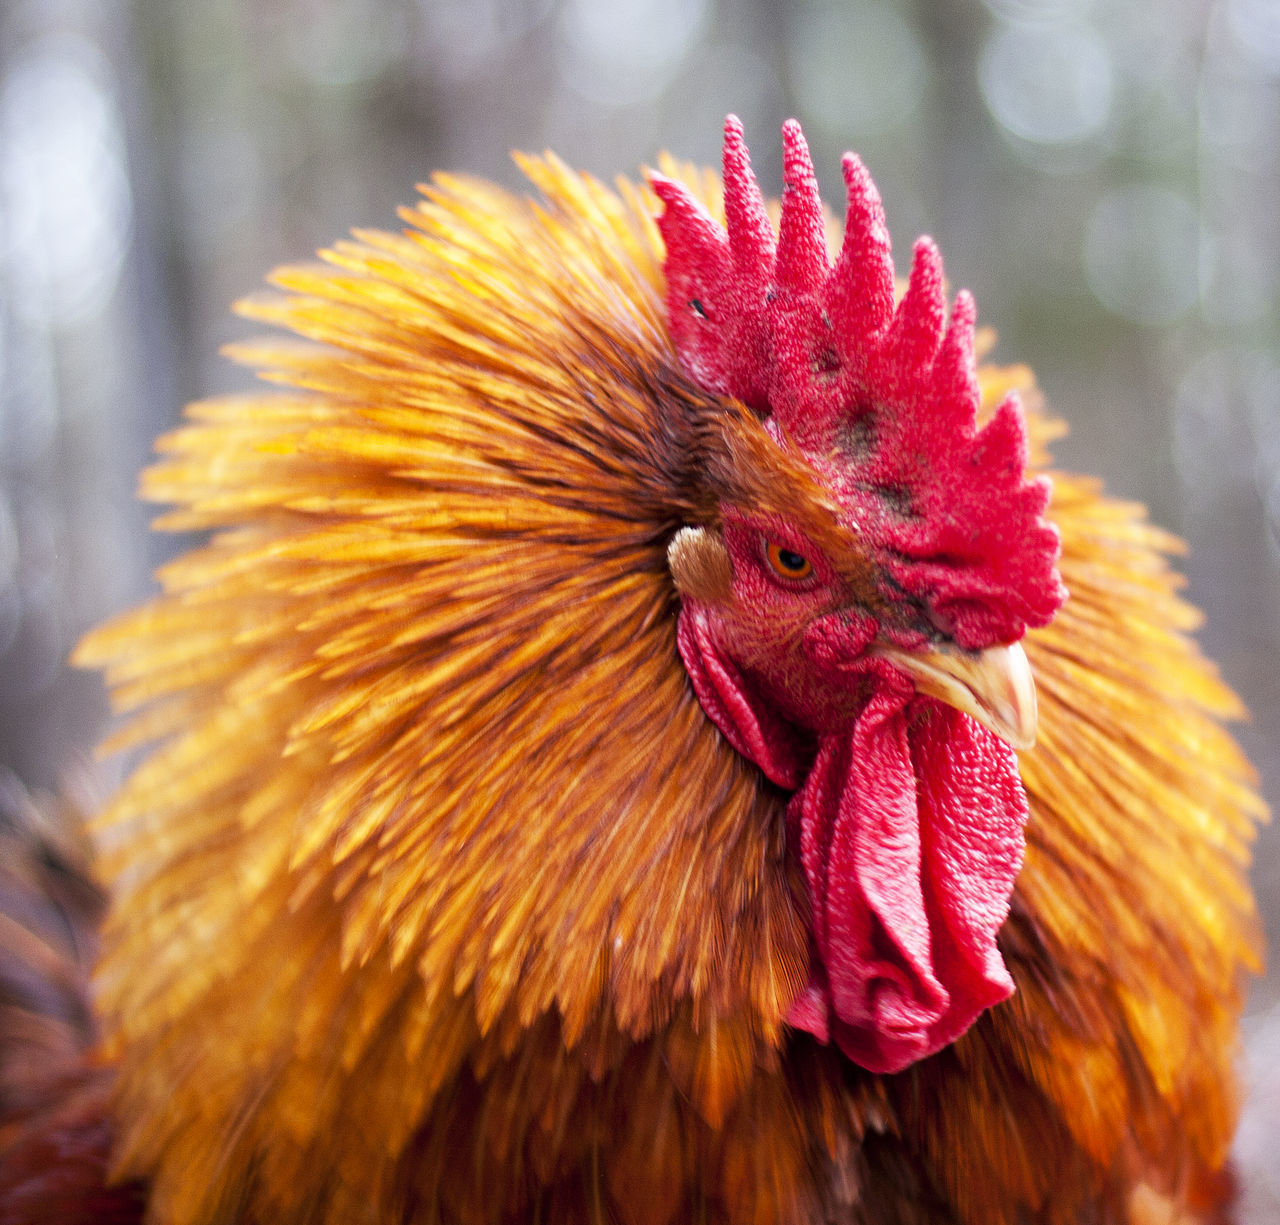 You wouldn't like me when I'm angry... Animal Crest Animal Themes Bird Chicken - Bird Close-up Cockerel Day Domestic Animals Focus On Foreground Hen Livestock Mammal Nature No People One Animal Outdoors Rooster